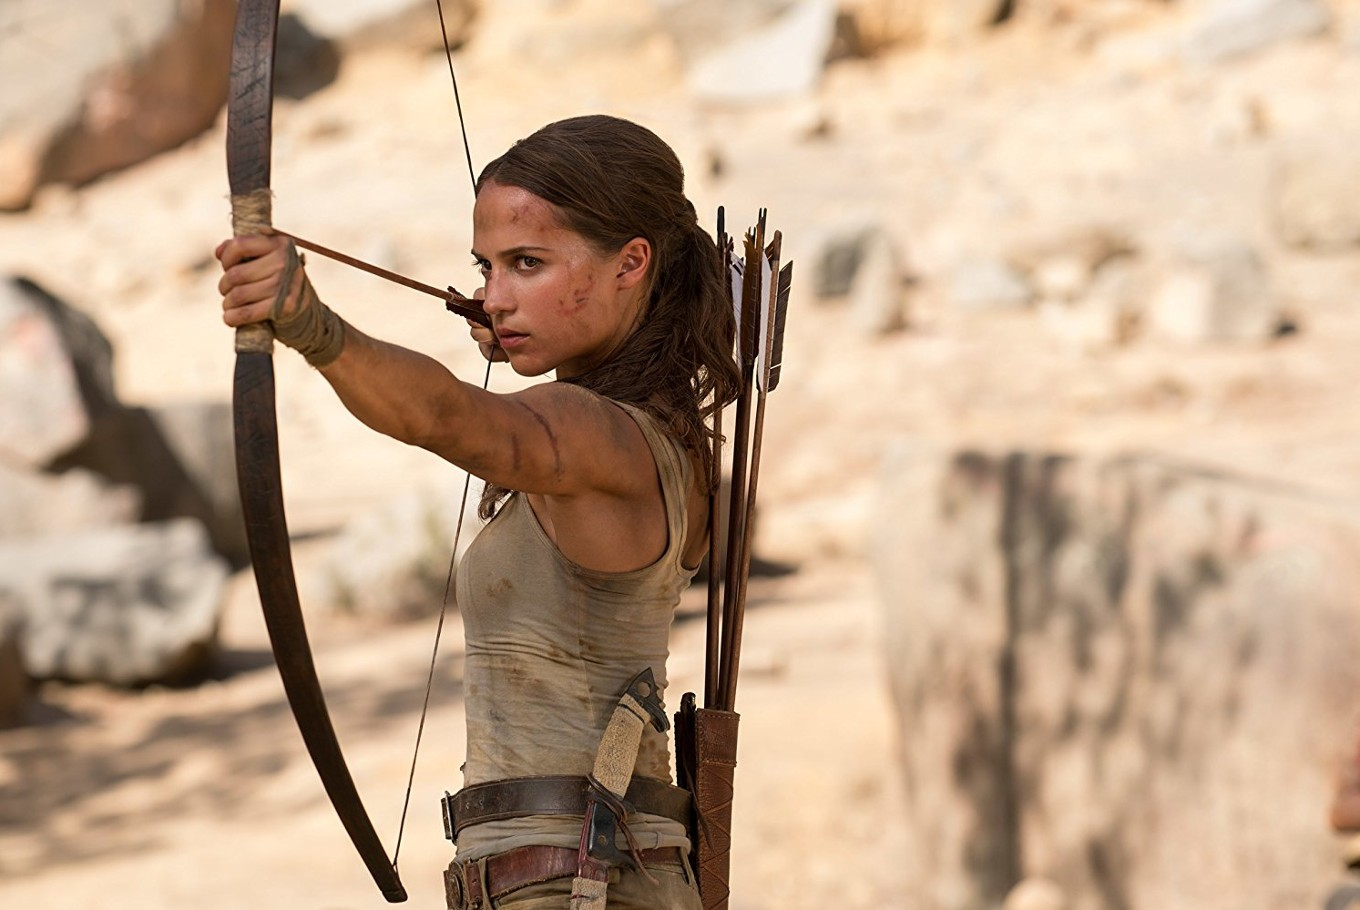 The follow-up to 'Tomb Raider' has a director and release date